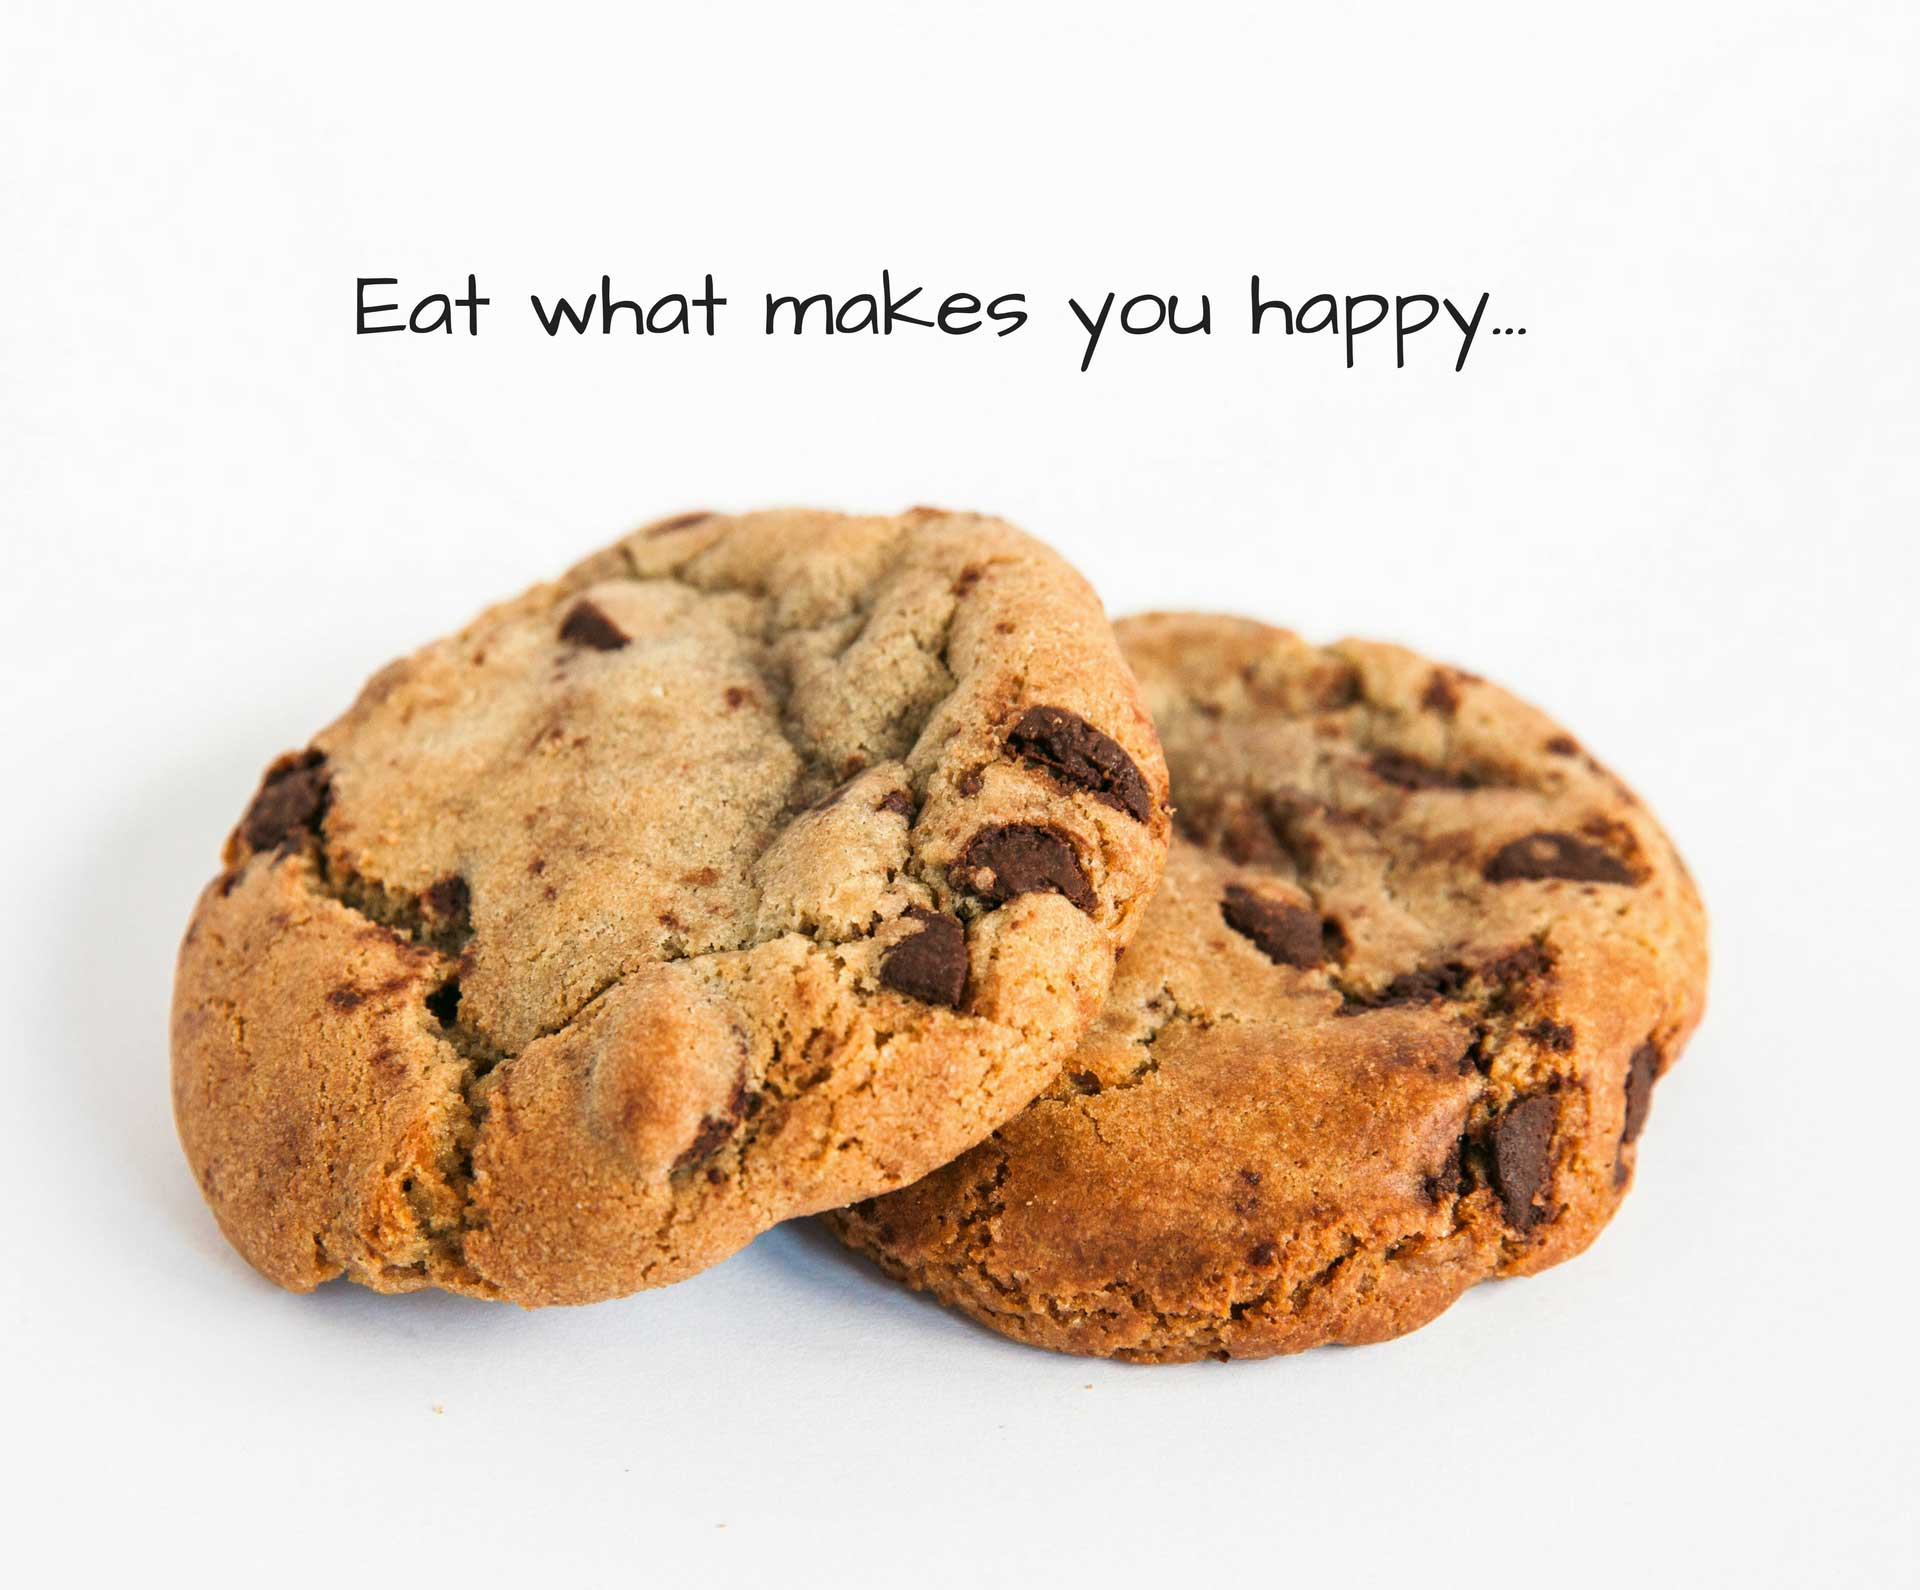 Eat-what-makes-you-happy